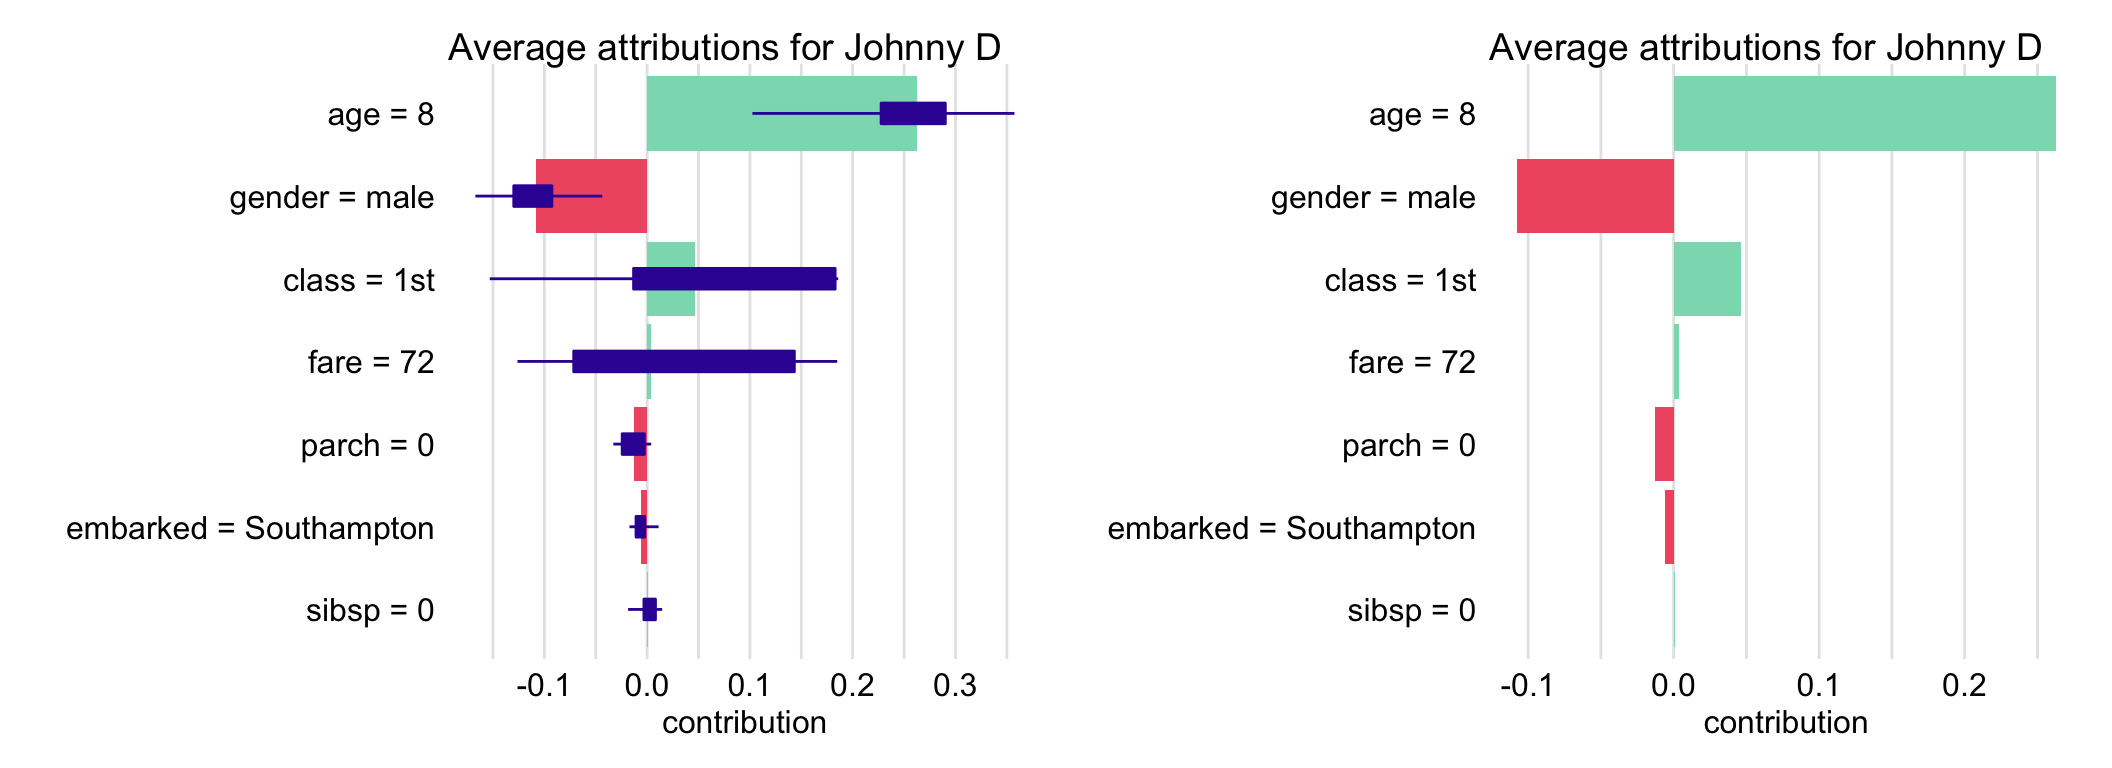 Explanatory-variable attributions for the prediction for Johnny D for the random forest model titanic_rf and the Titanic data based on 25 random orderings. Left-hand-side plot: box plots summarize the distribution of the attributions for each explanatory variable across the orderings. Red and green bars present Shapley values. Right-hand-side plot: Shapley values (mean attributions) without box plots.